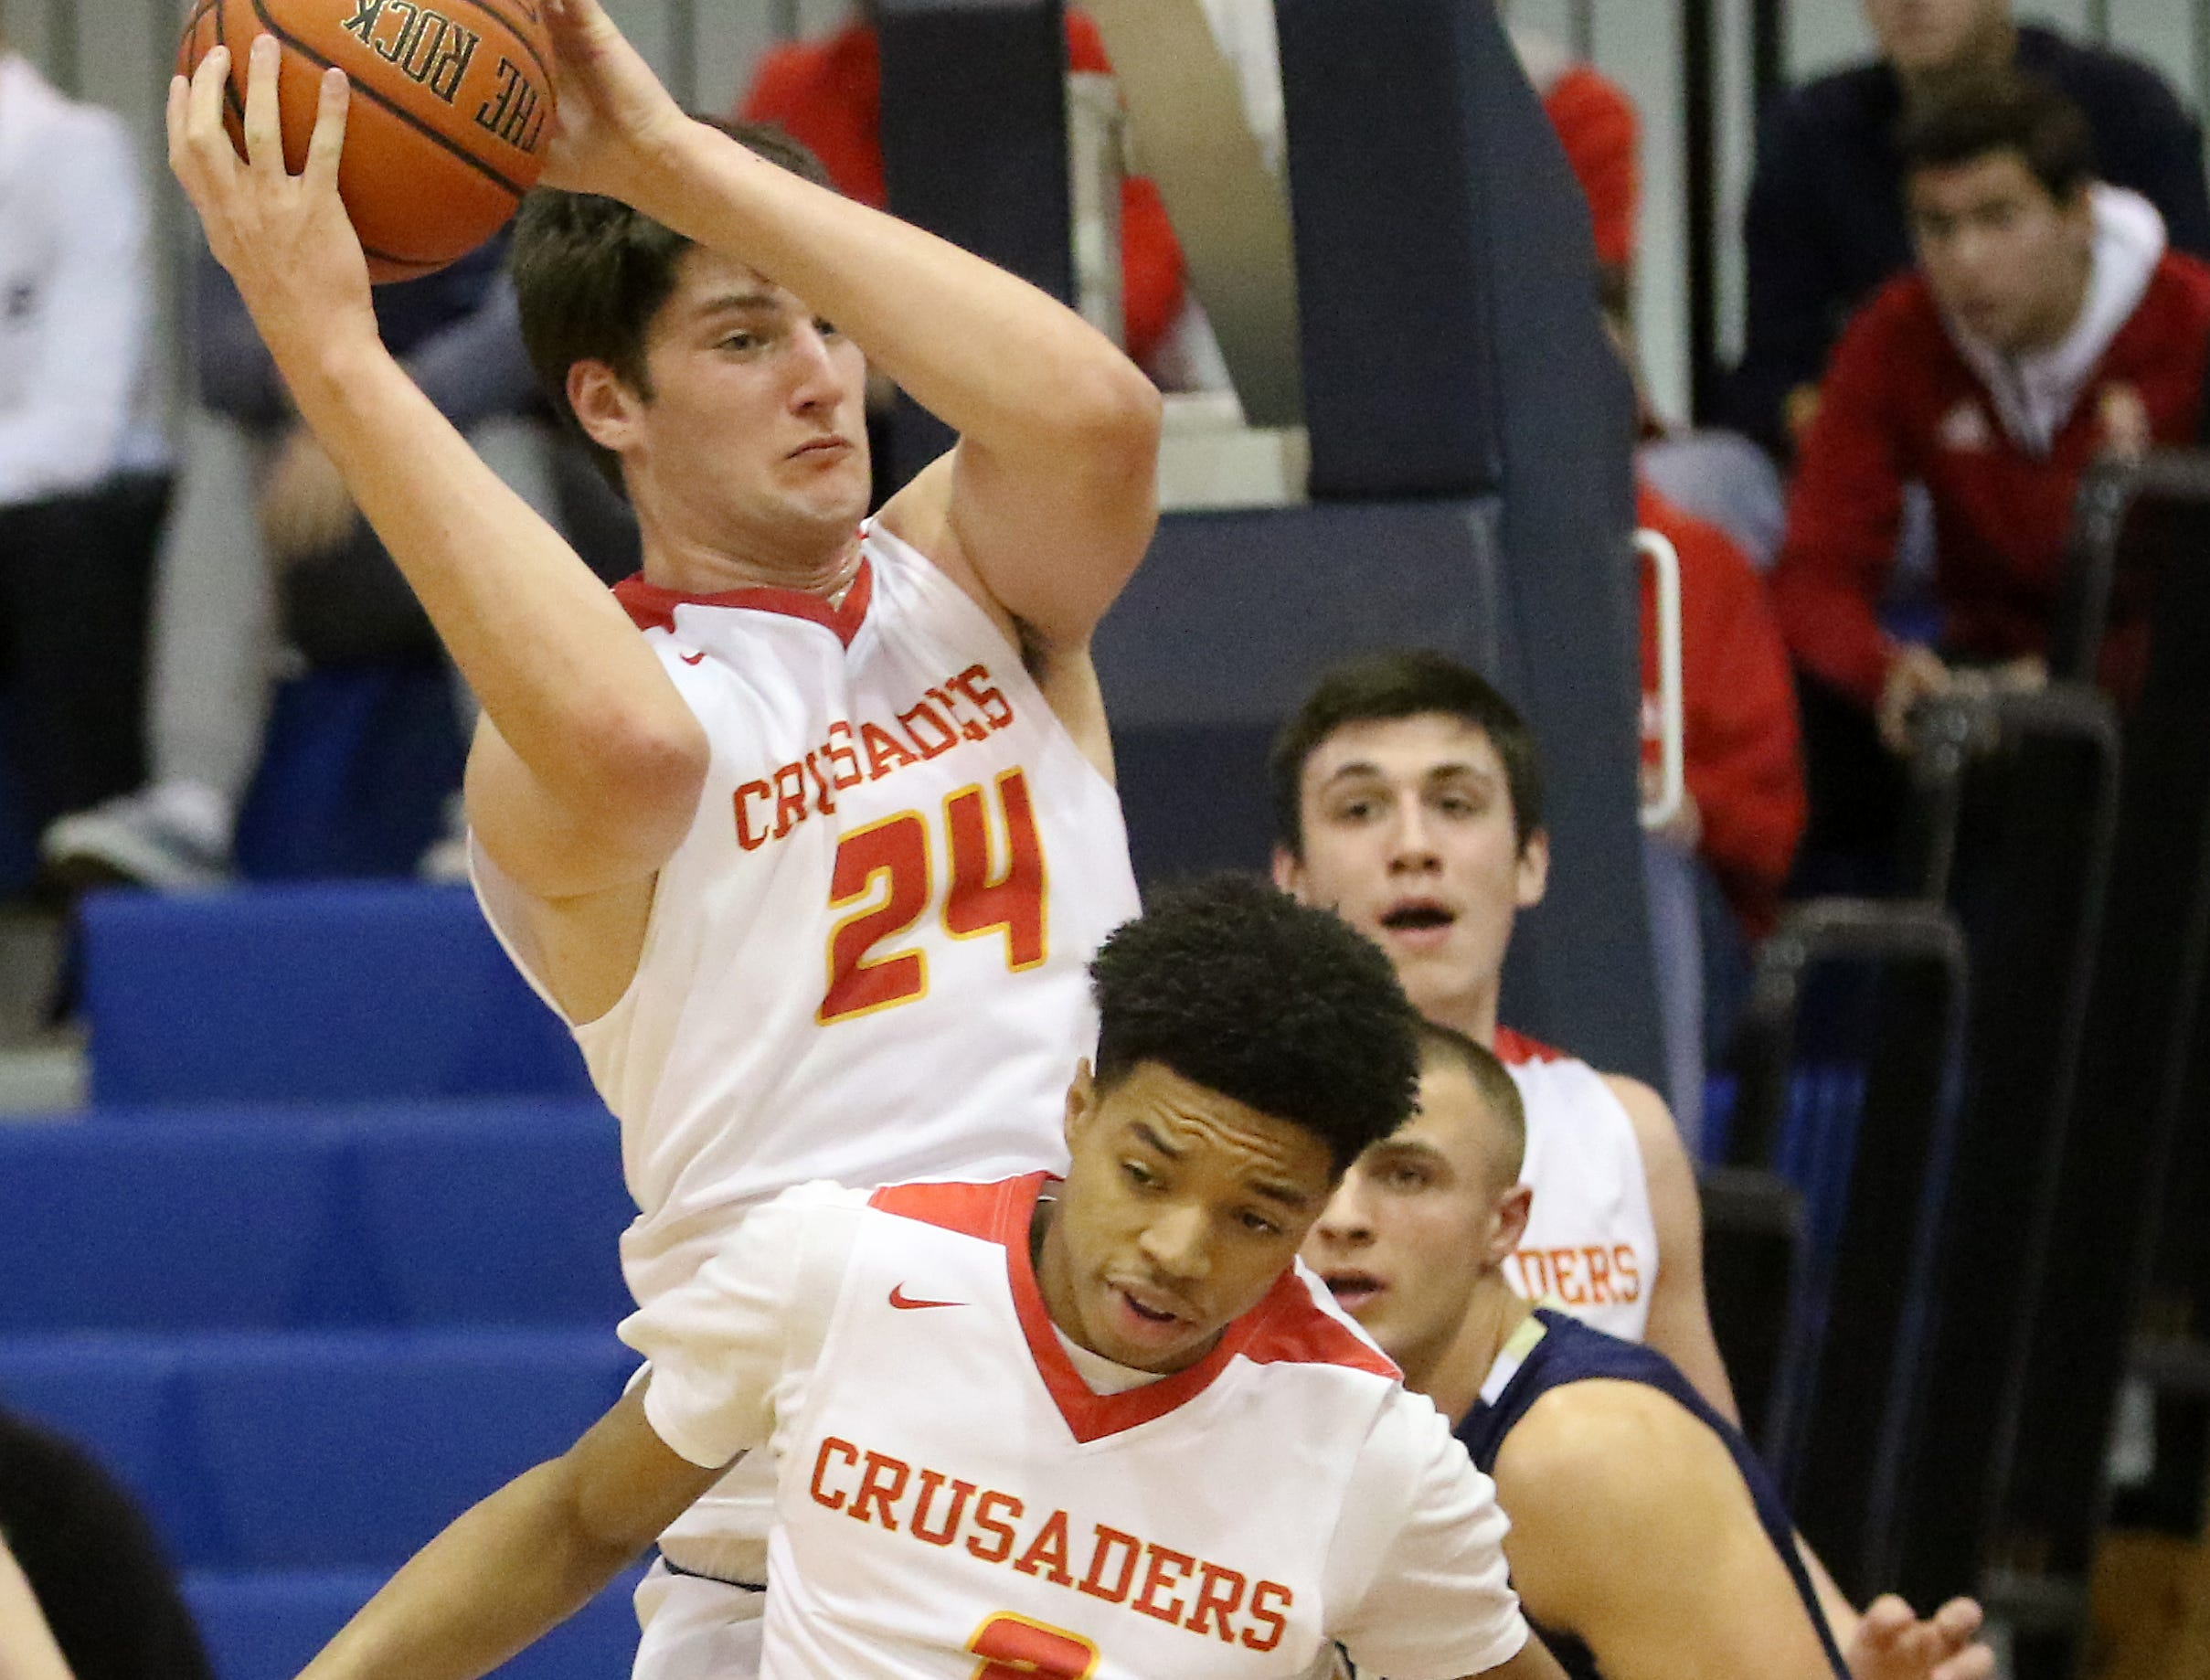 Matt Zona, of Bergen Catholic comes up with the ball at the Bergen County Jamboree. Sunday, February 10, 2019